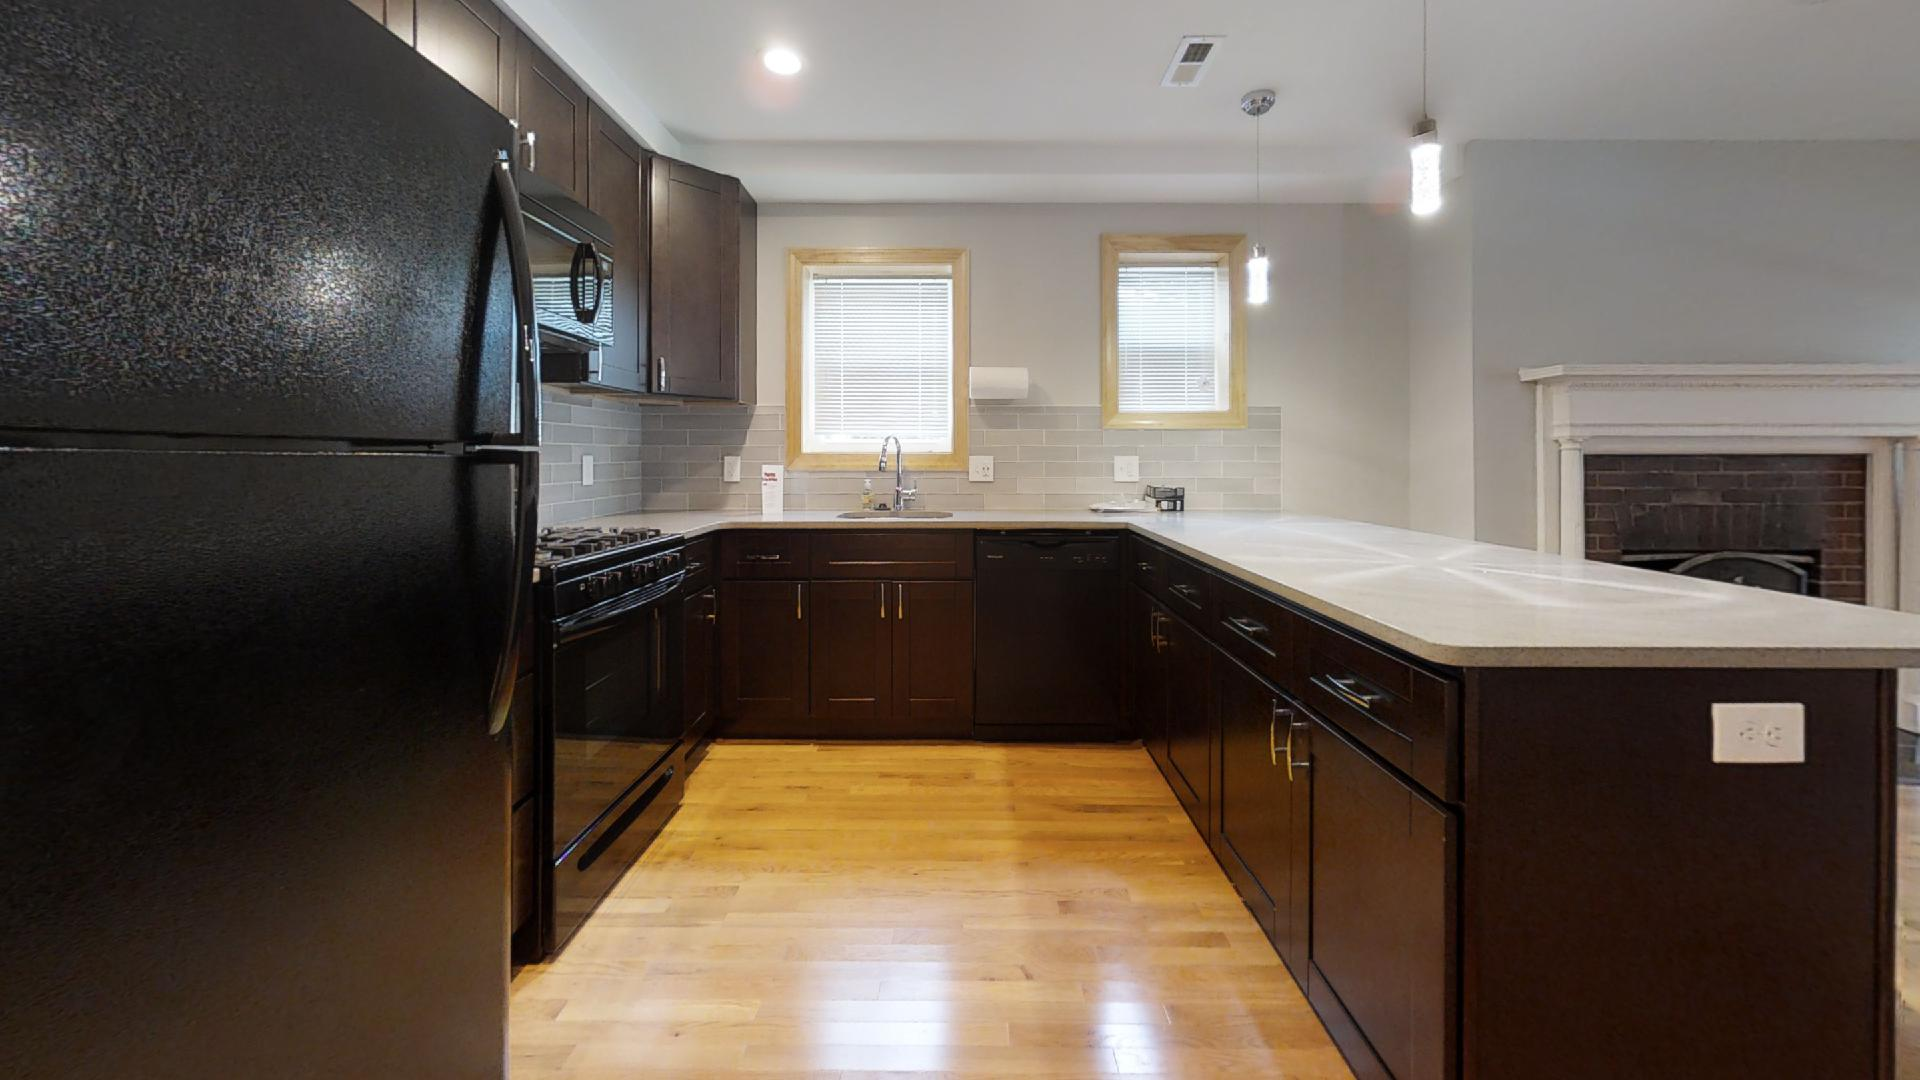 4201 Roland Ave Luxurious 1 Bedroom In Historic Roland